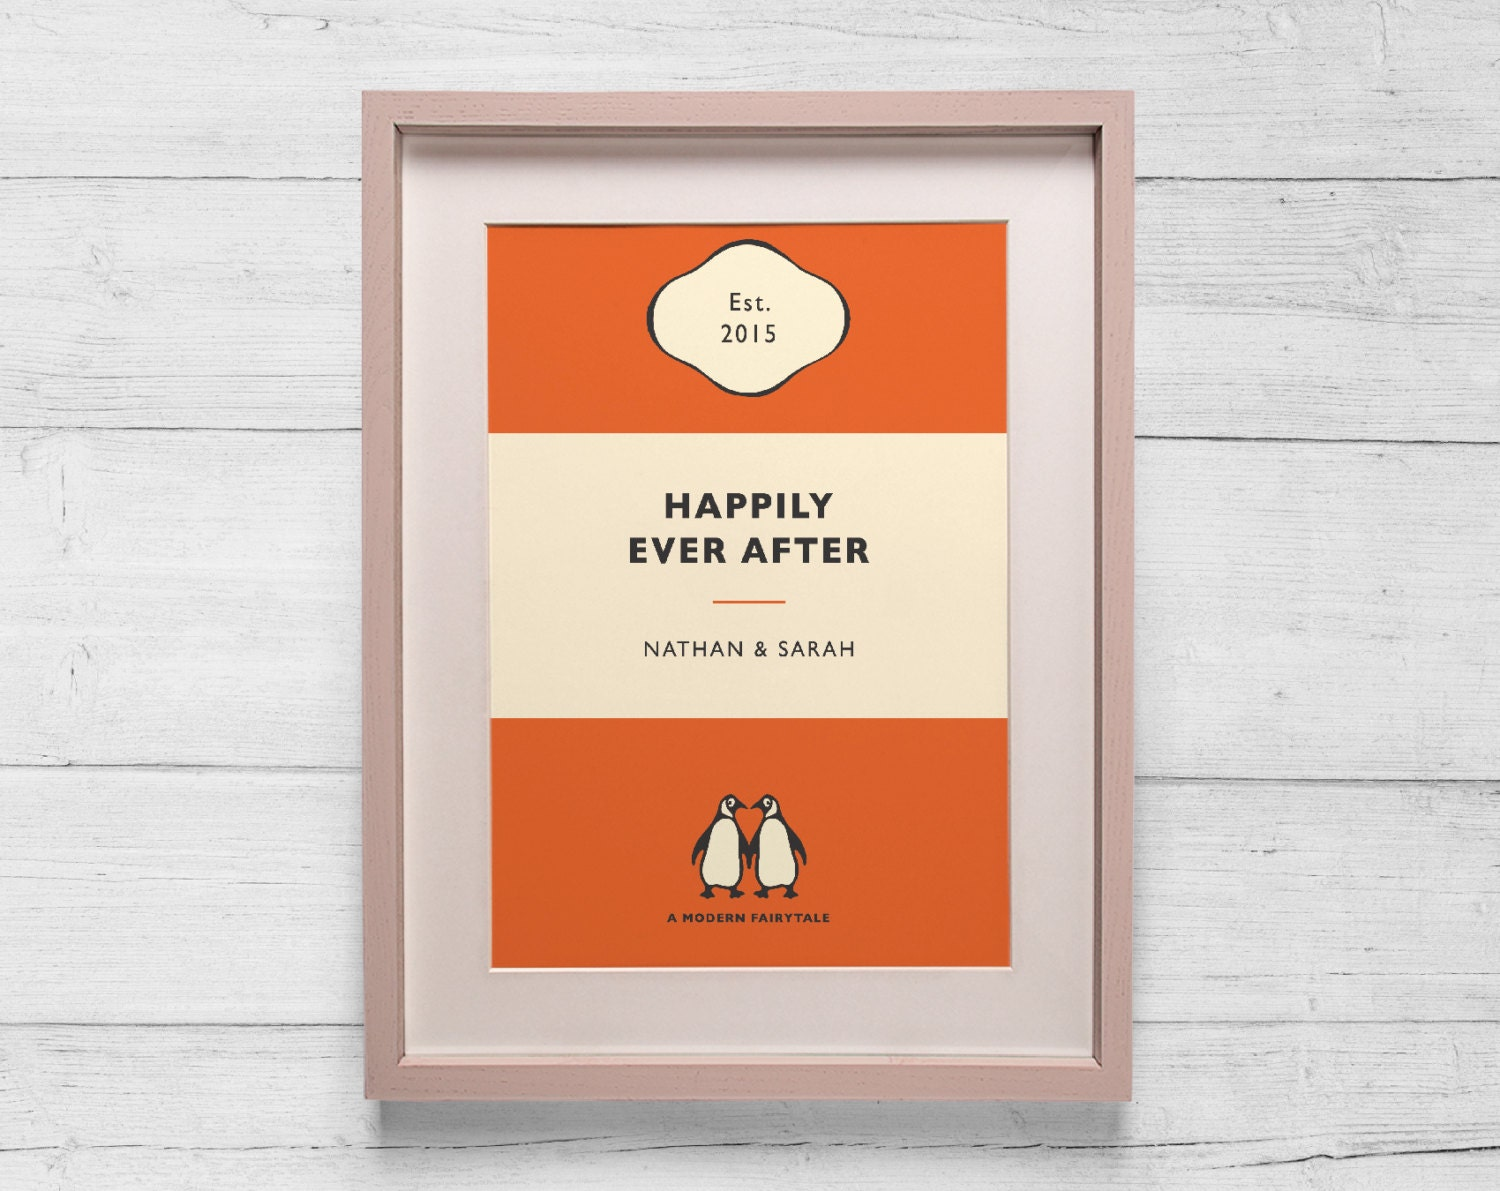 Design Your Own Penguin Book Cover : Personalised penguin book cover print wedding by bokaprint